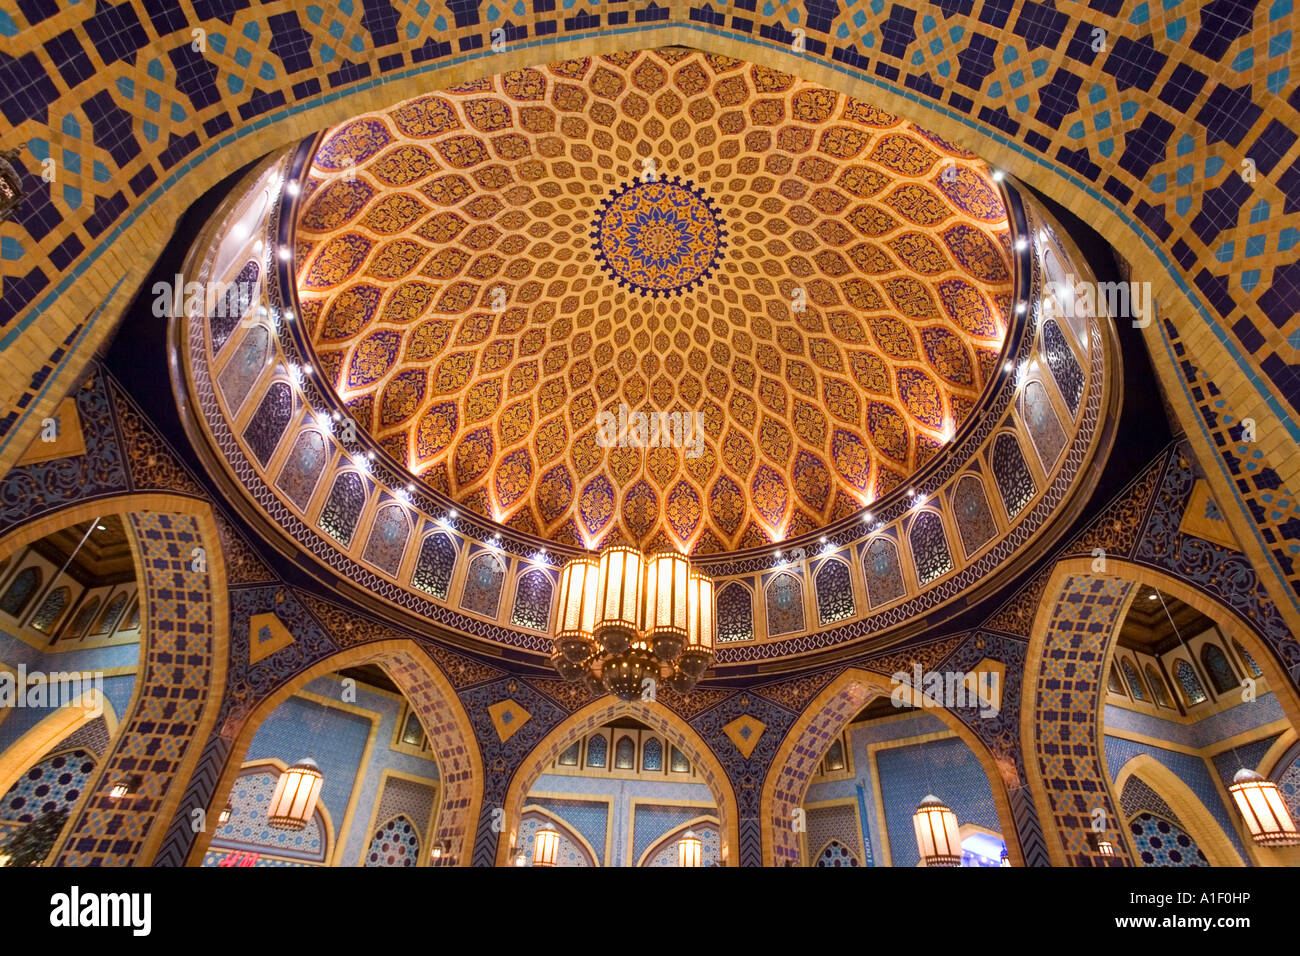 Ibn Battuta Mall in Dubai persischen Stil interieur Stockbild